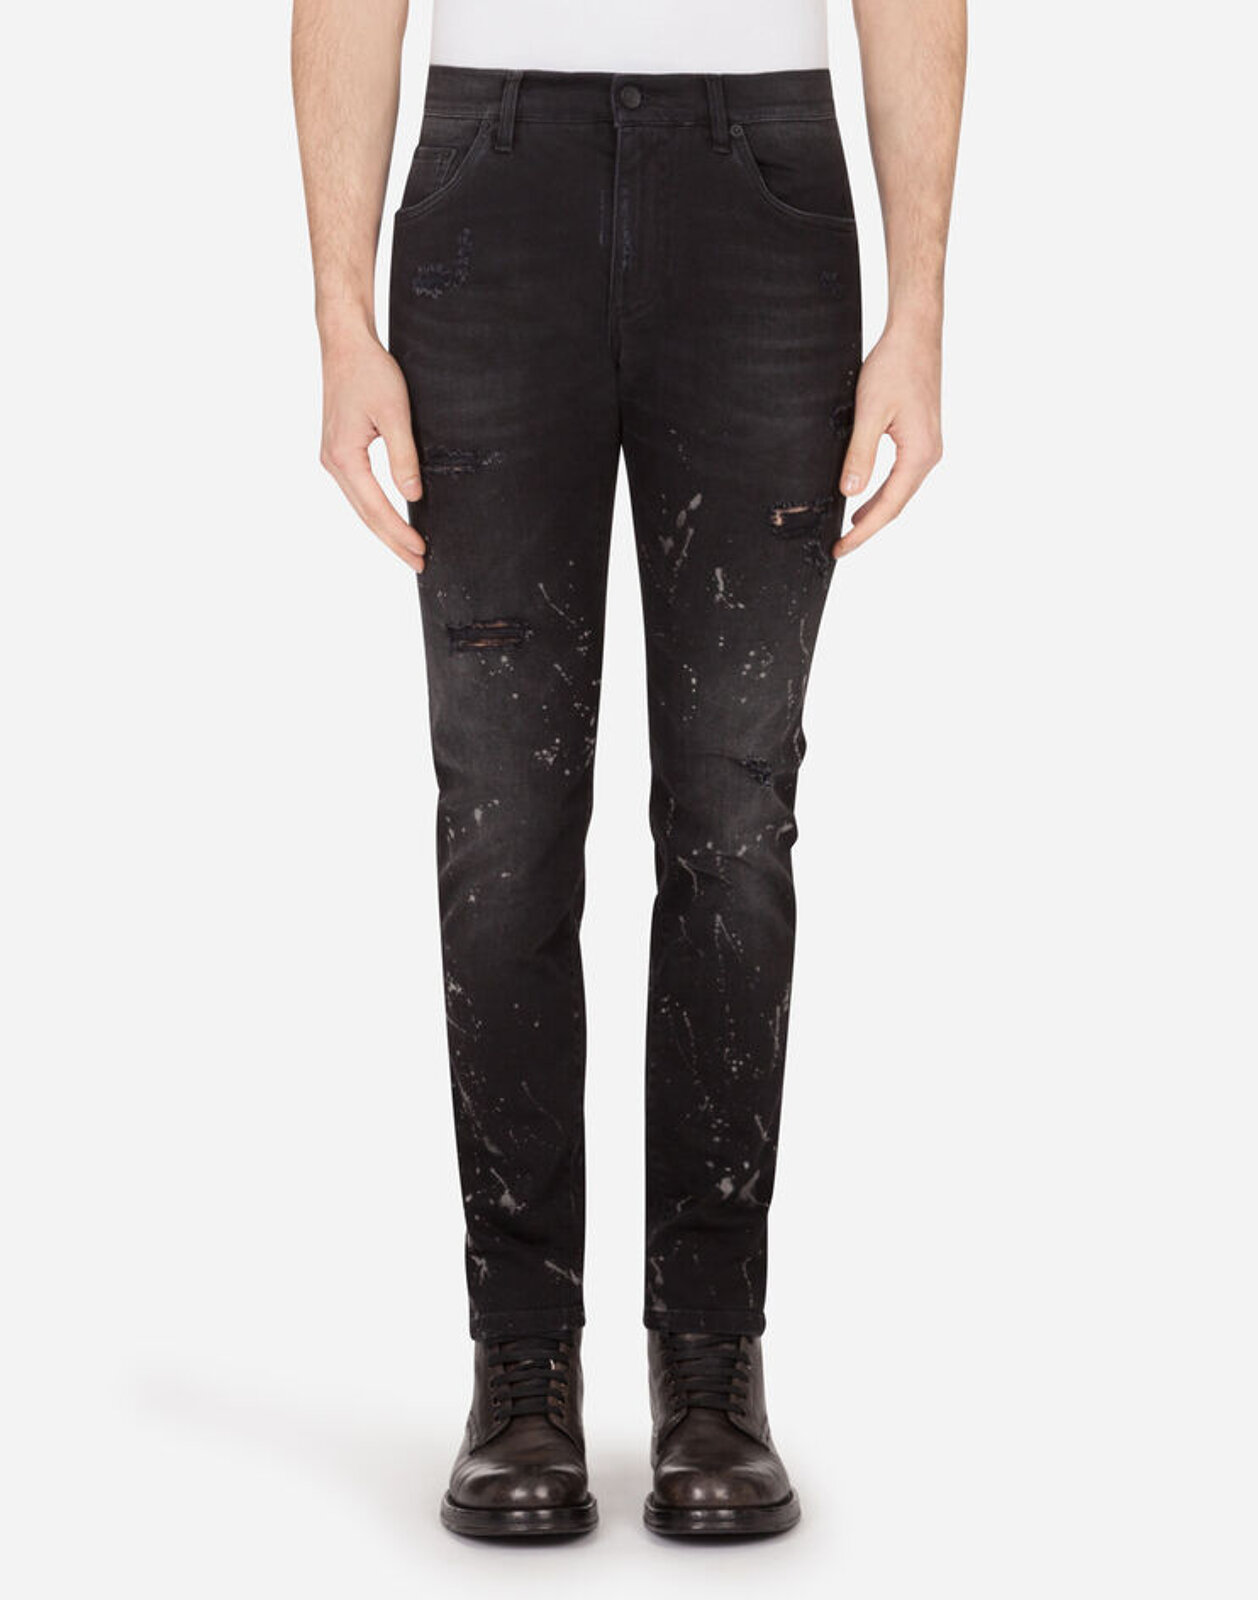 Black Spotted Stretch Skinny Jeans With Tears - Dolce & Gabbana